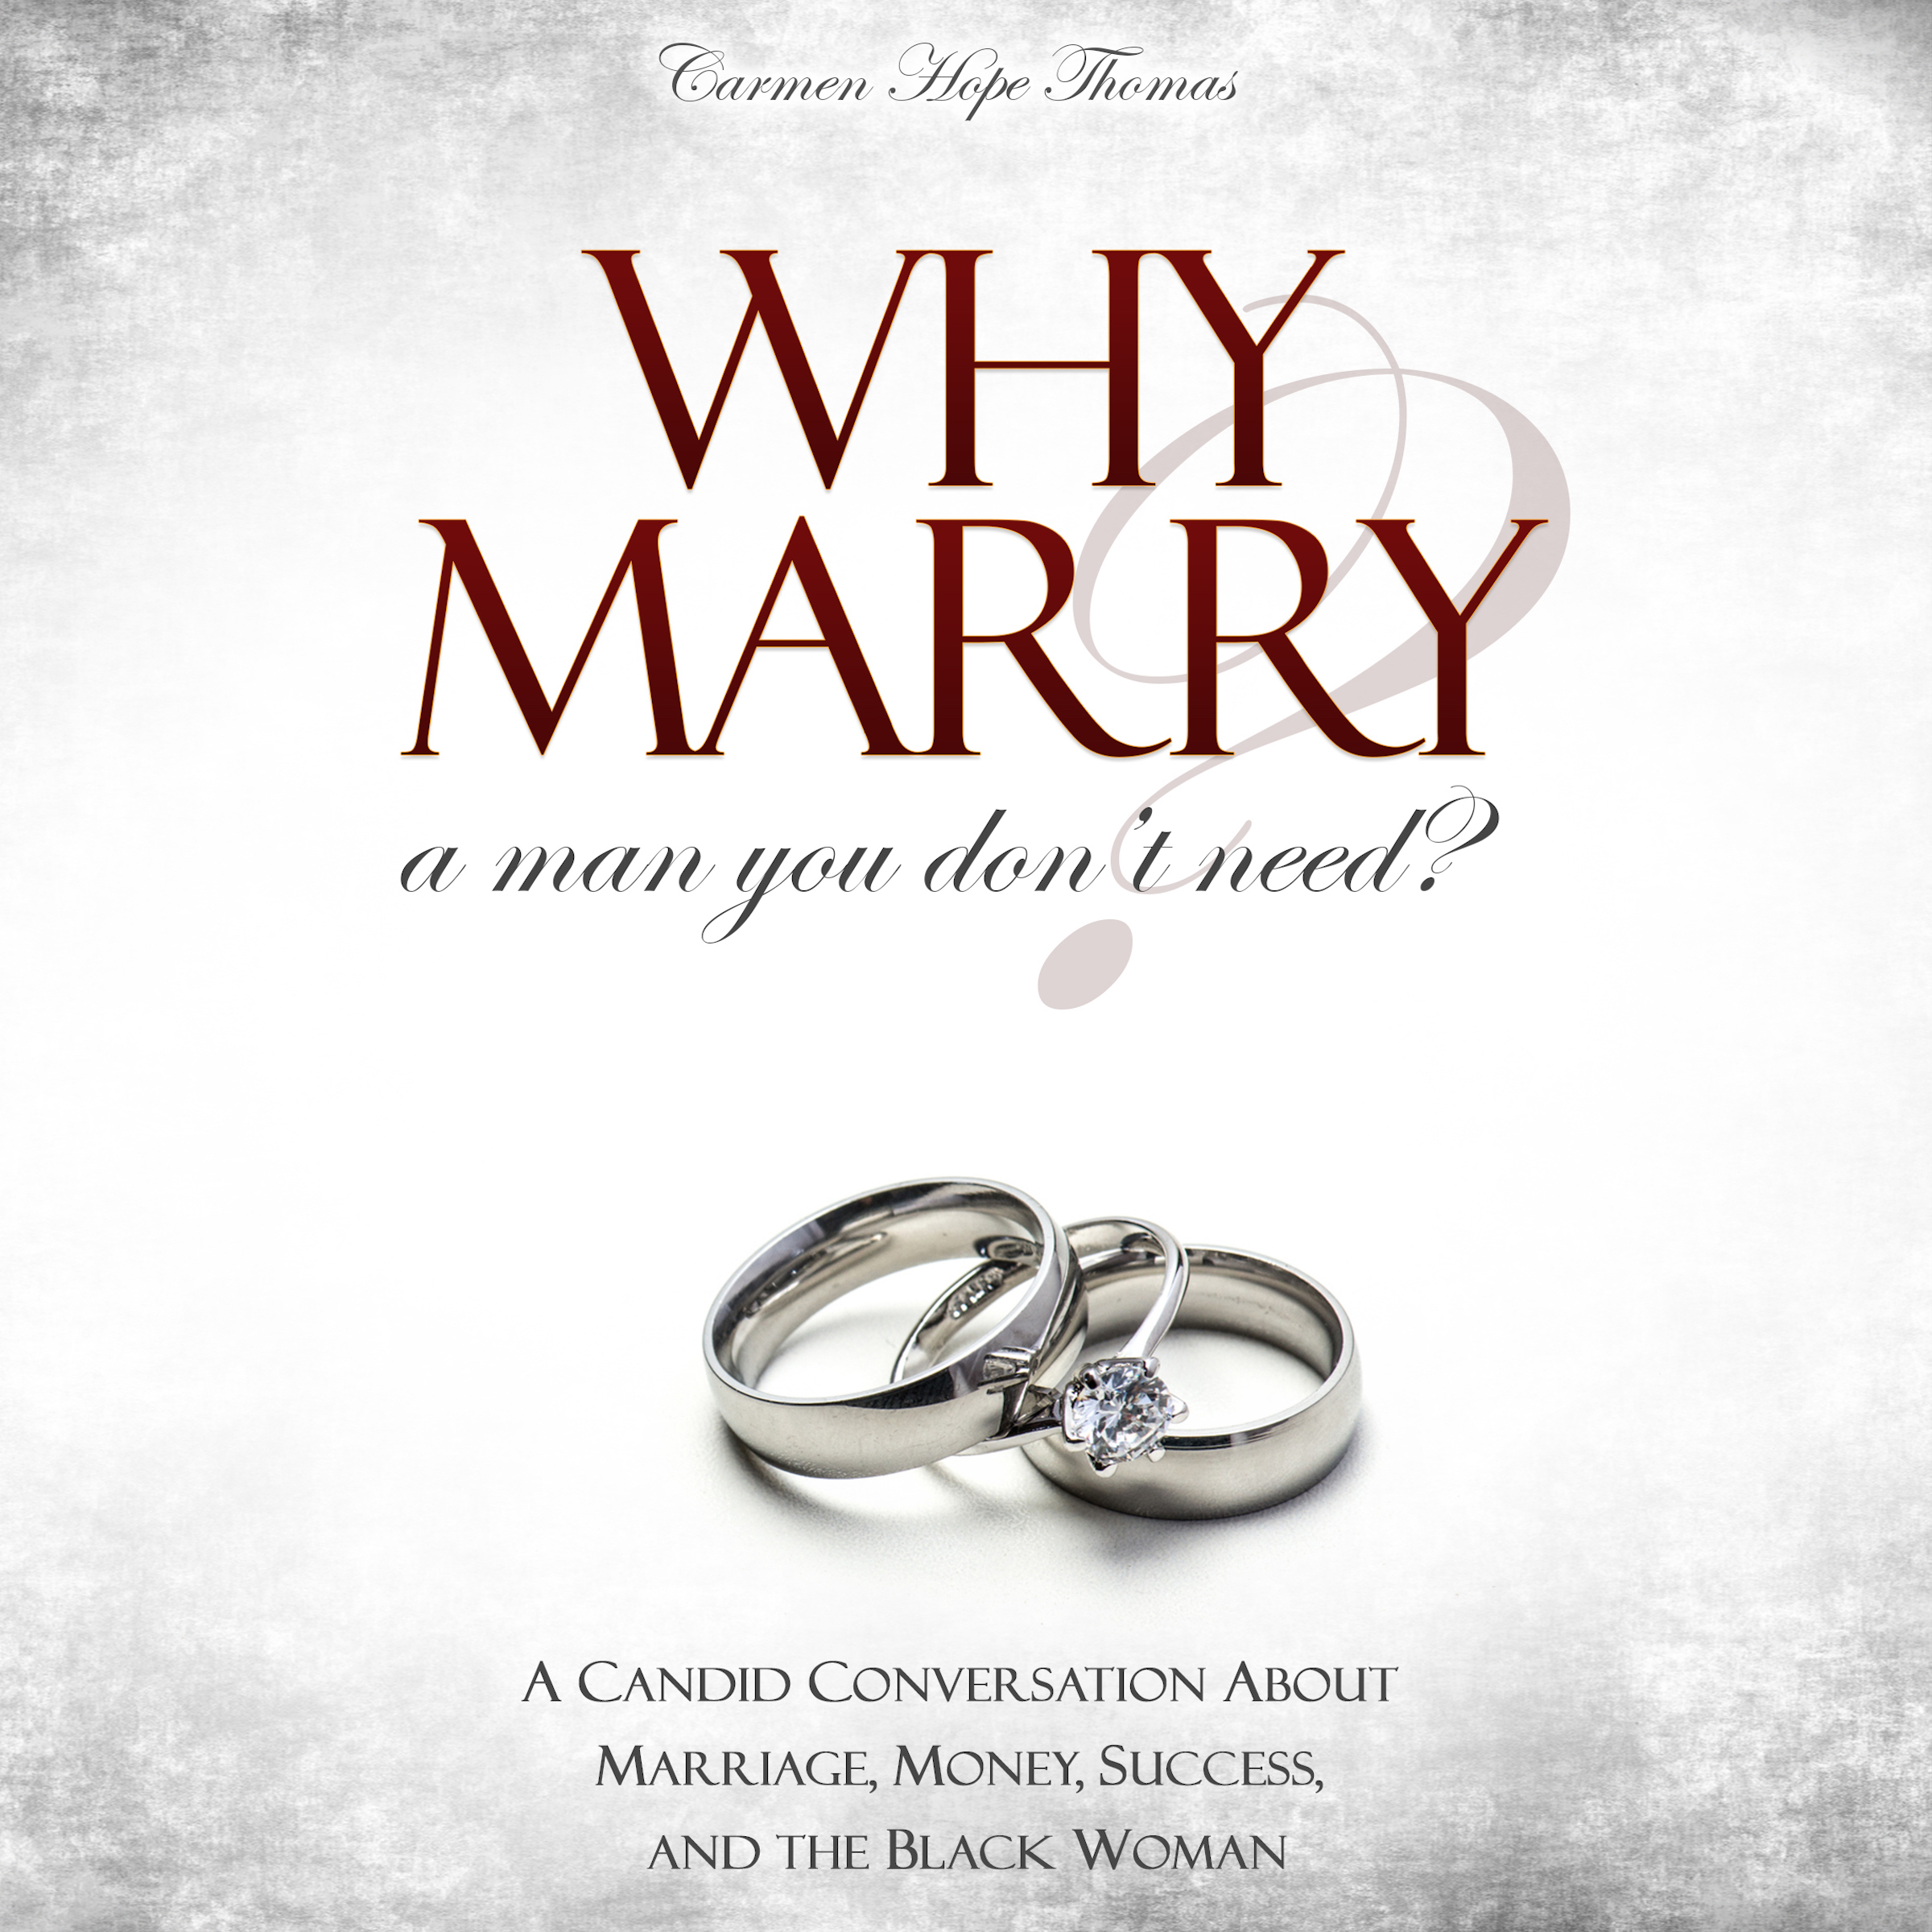 Printable Why Marry a Man You Don't Need?: A Candid Conversation About Marriage, Money, Success, and the Black Woman Audiobook Cover Art